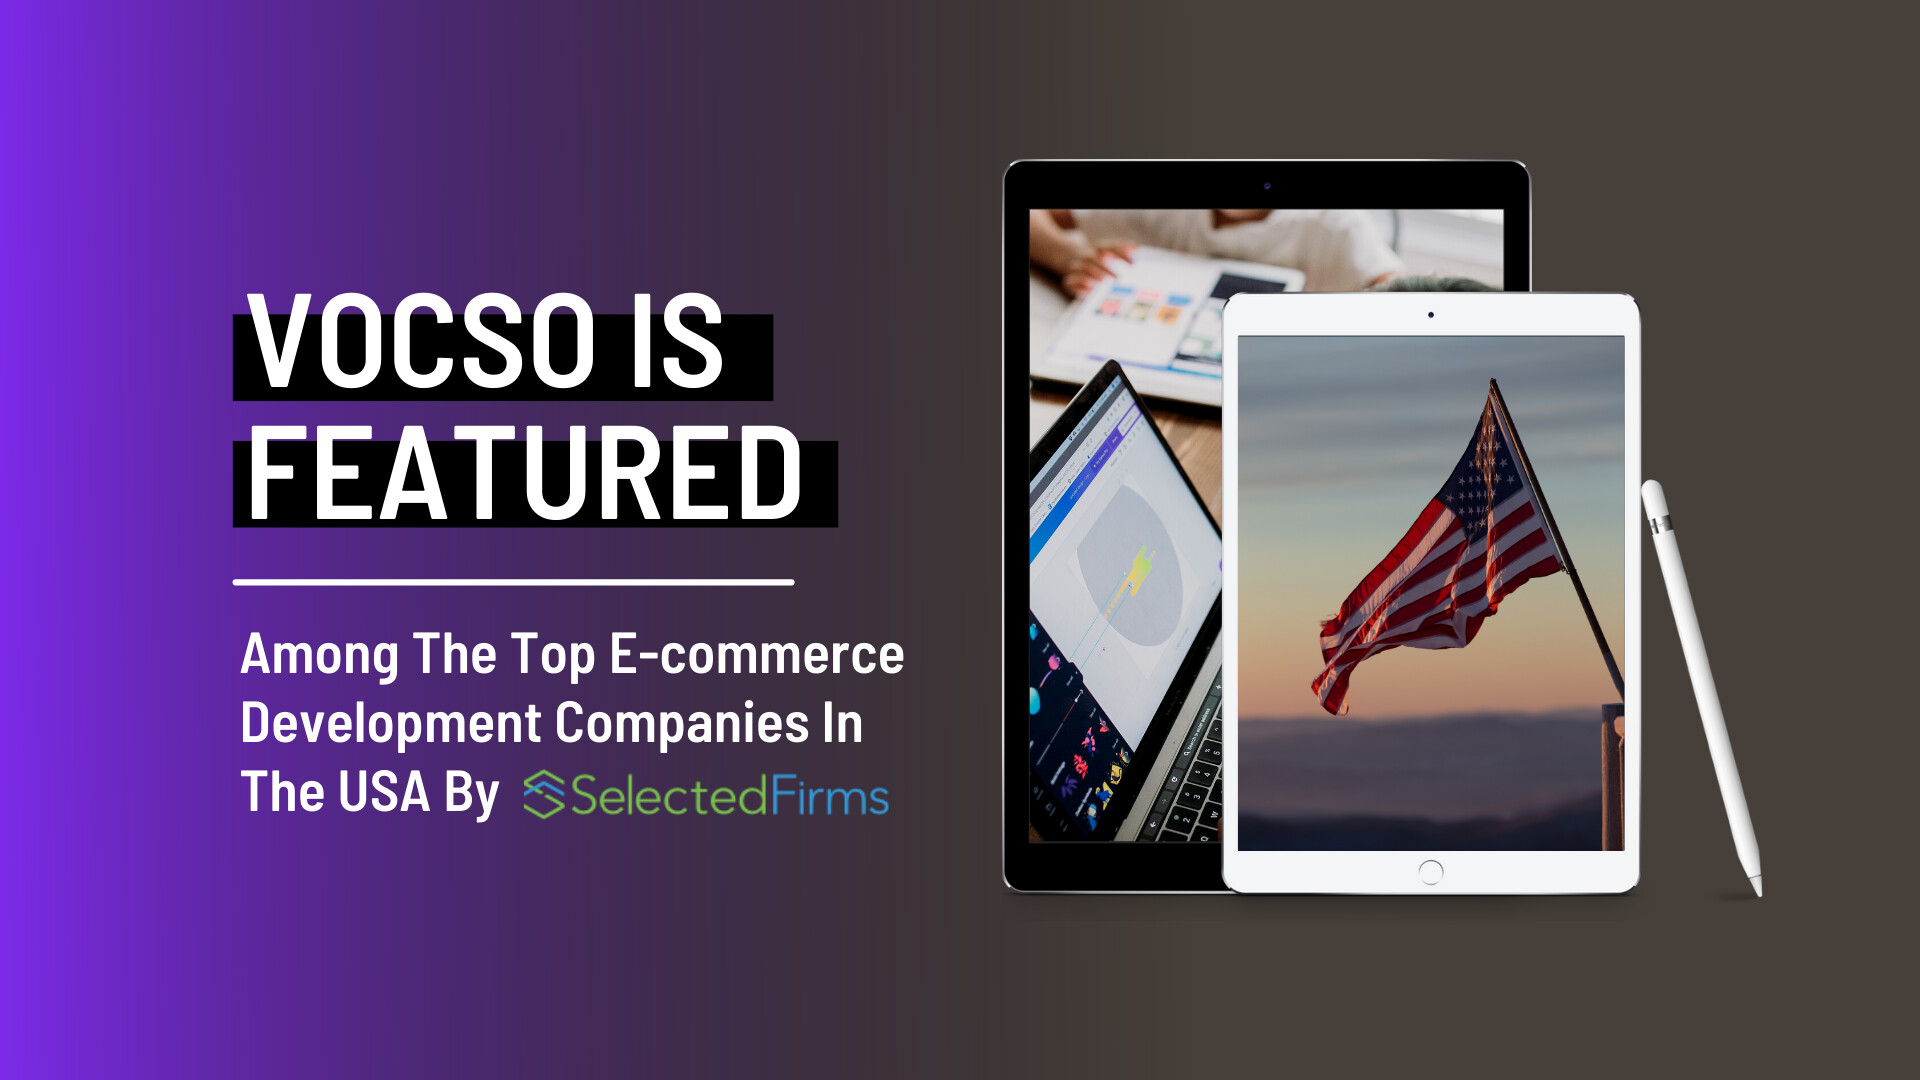 VOCSO Is Featured Among The Top E-commerce Development Companies In The USA By Selected Firms